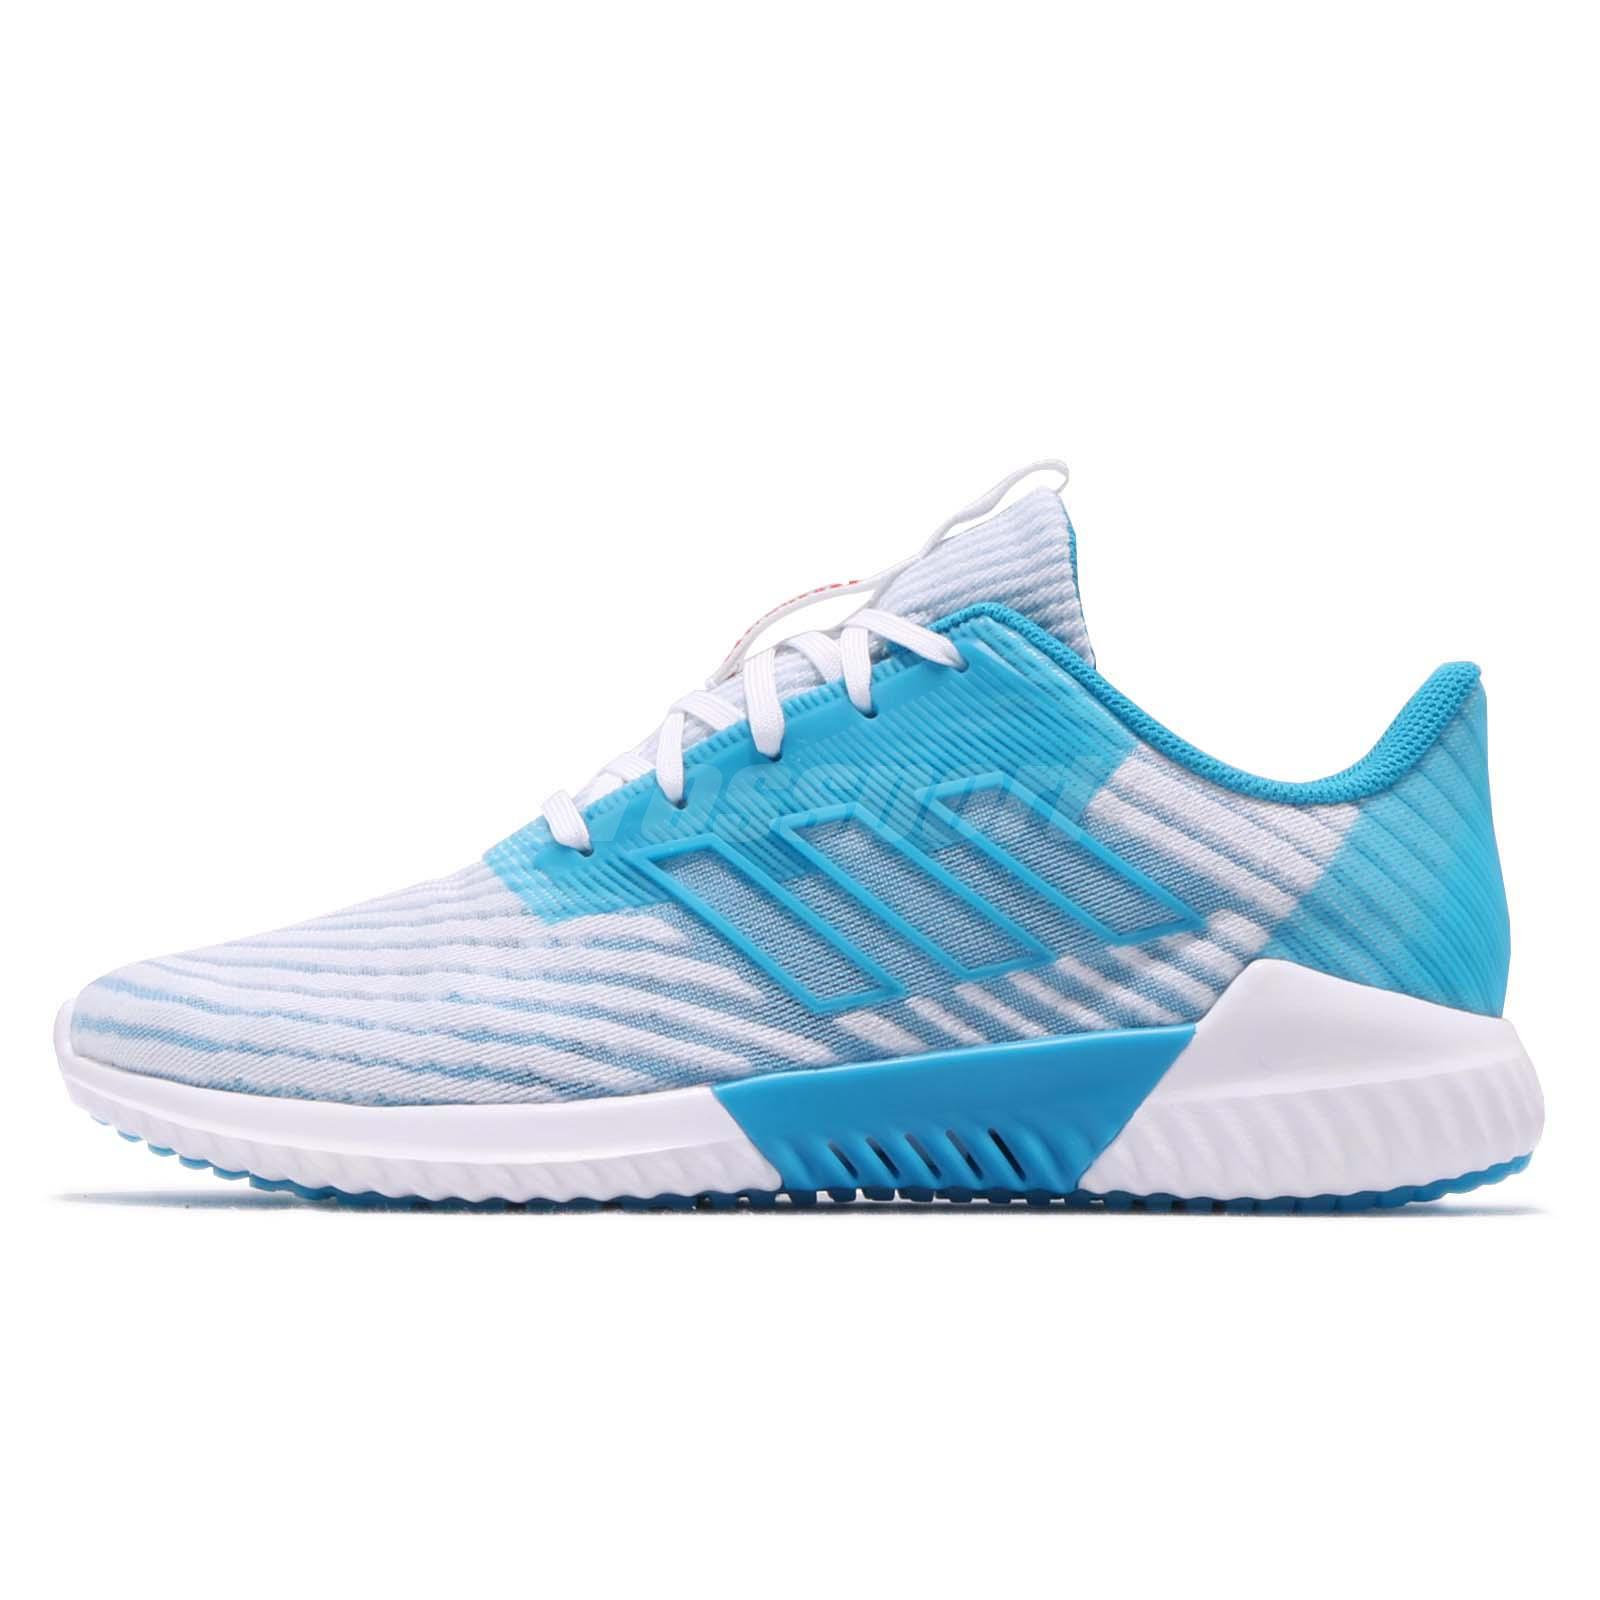 size 40 ff993 028a0 Details about adidas Climacool 2.0 M Blue White Men Running Training Shoes  Sneakers B75874